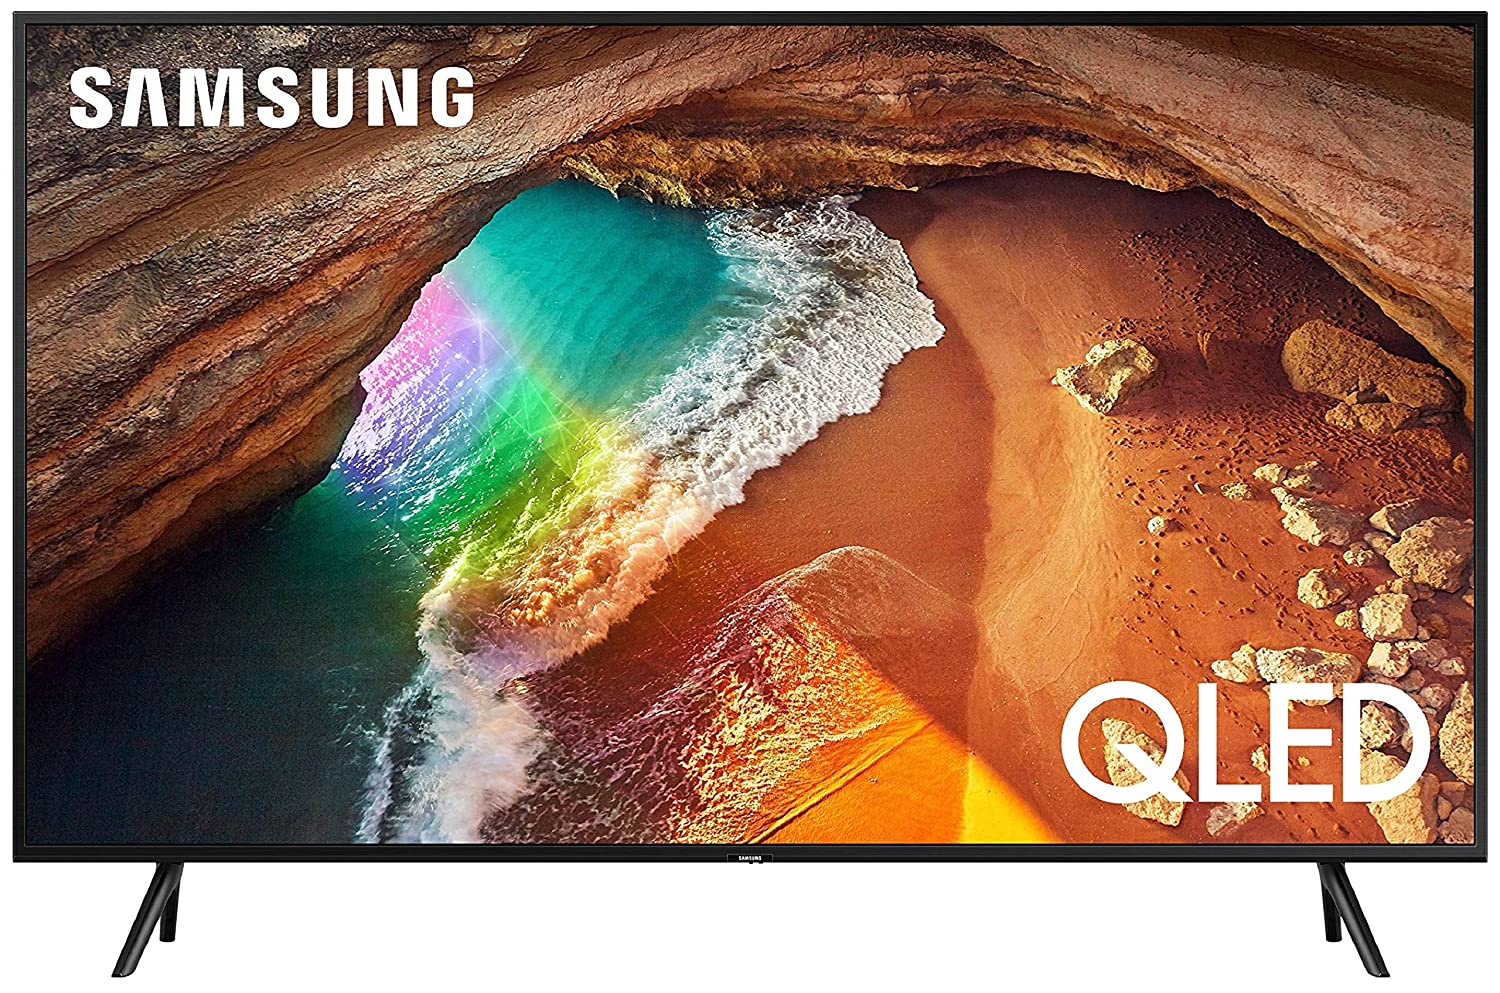 Samsung QA55Q60RAKXXL Best Smart TV